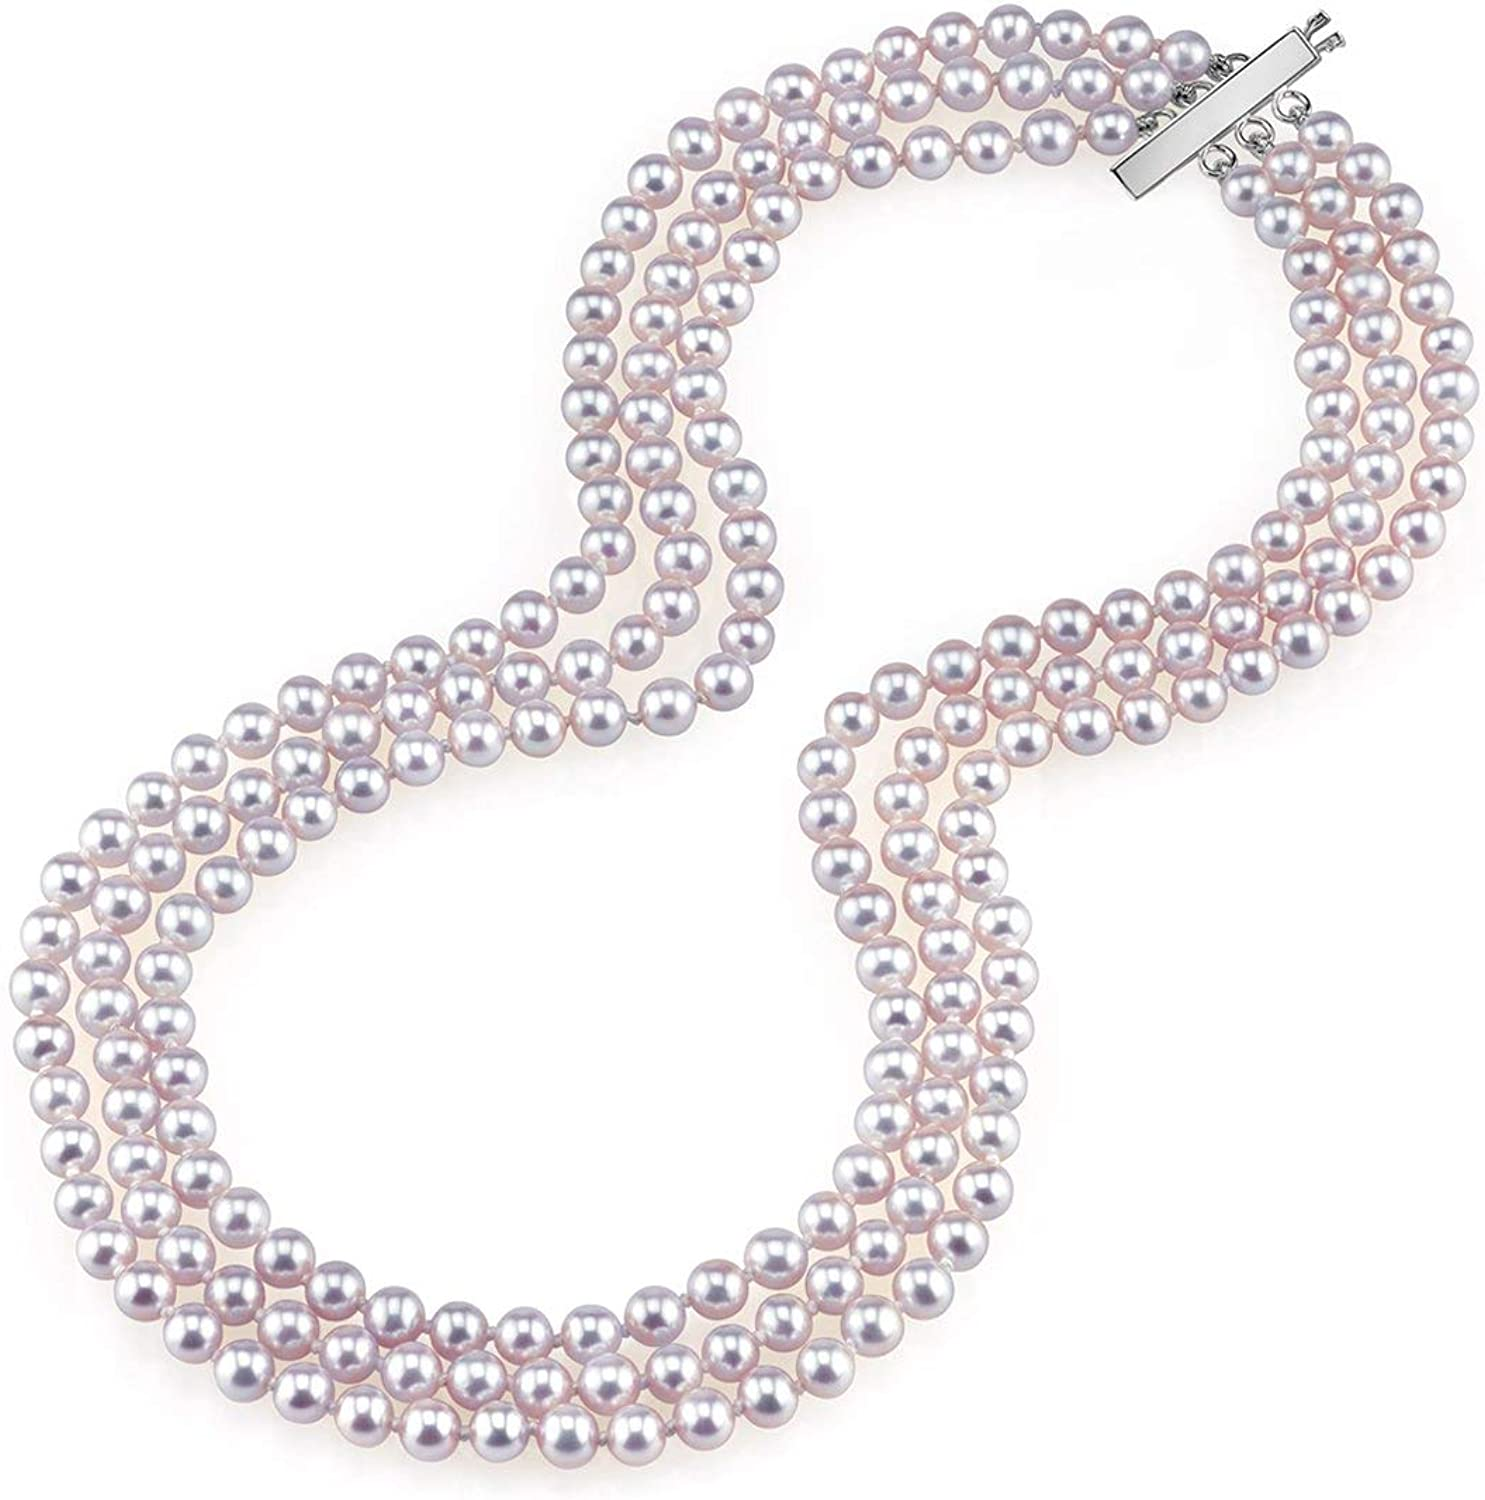 THE PEARL SOURCE 14K Gold AAAA Quality Round Pink Freshwater Cultured Pearl Triple Strand Necklace for Women in 17-19